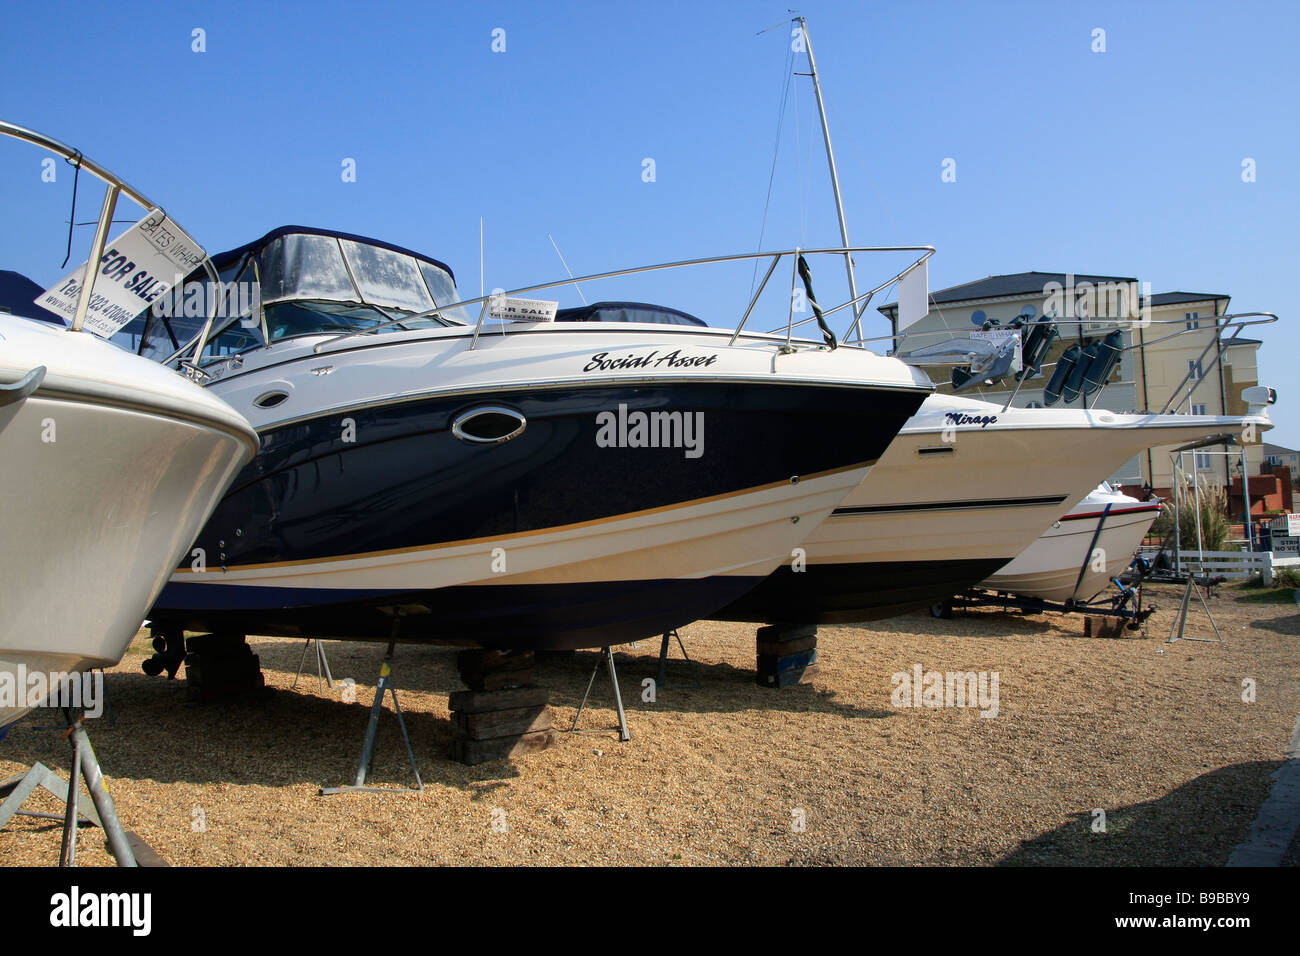 cabin cruisers lined up for sale - Stock Image